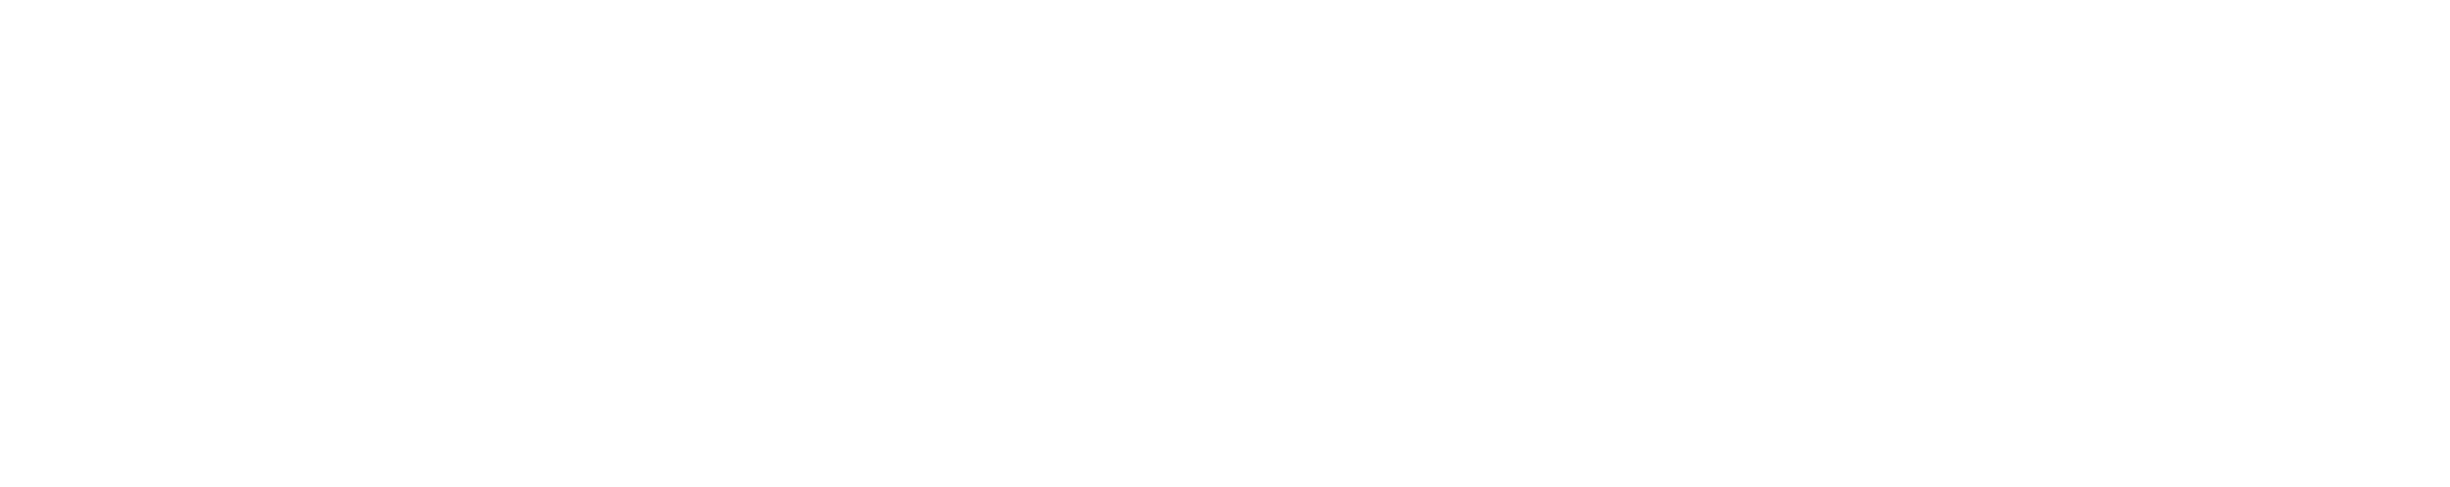 sony brand logo png images